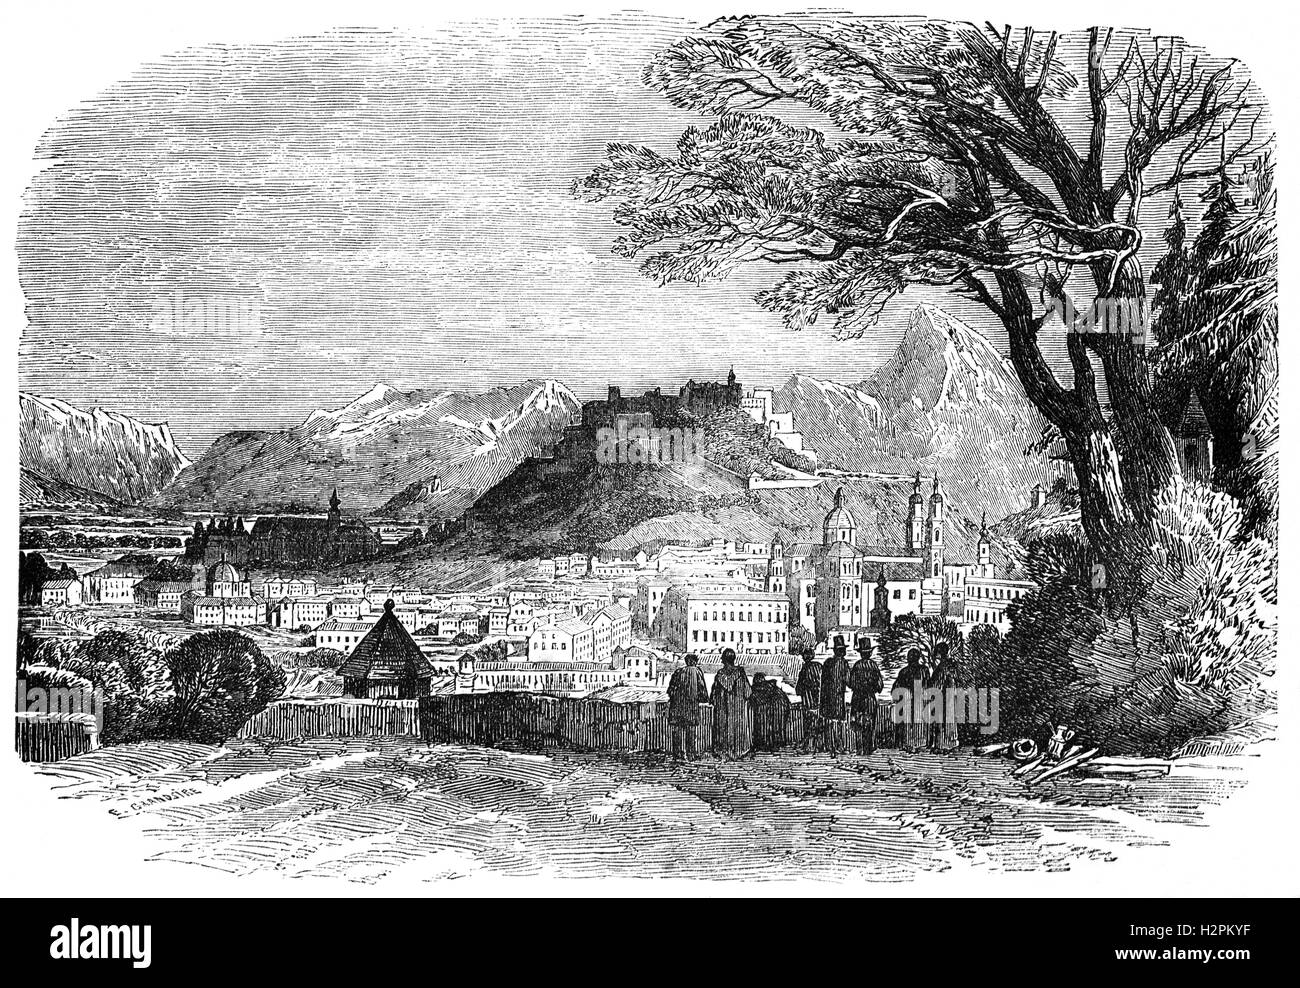 In 1850, Salzburg's status was restored as the capital of the Duchy of Salzburg, and became part of Austria - Stock Image